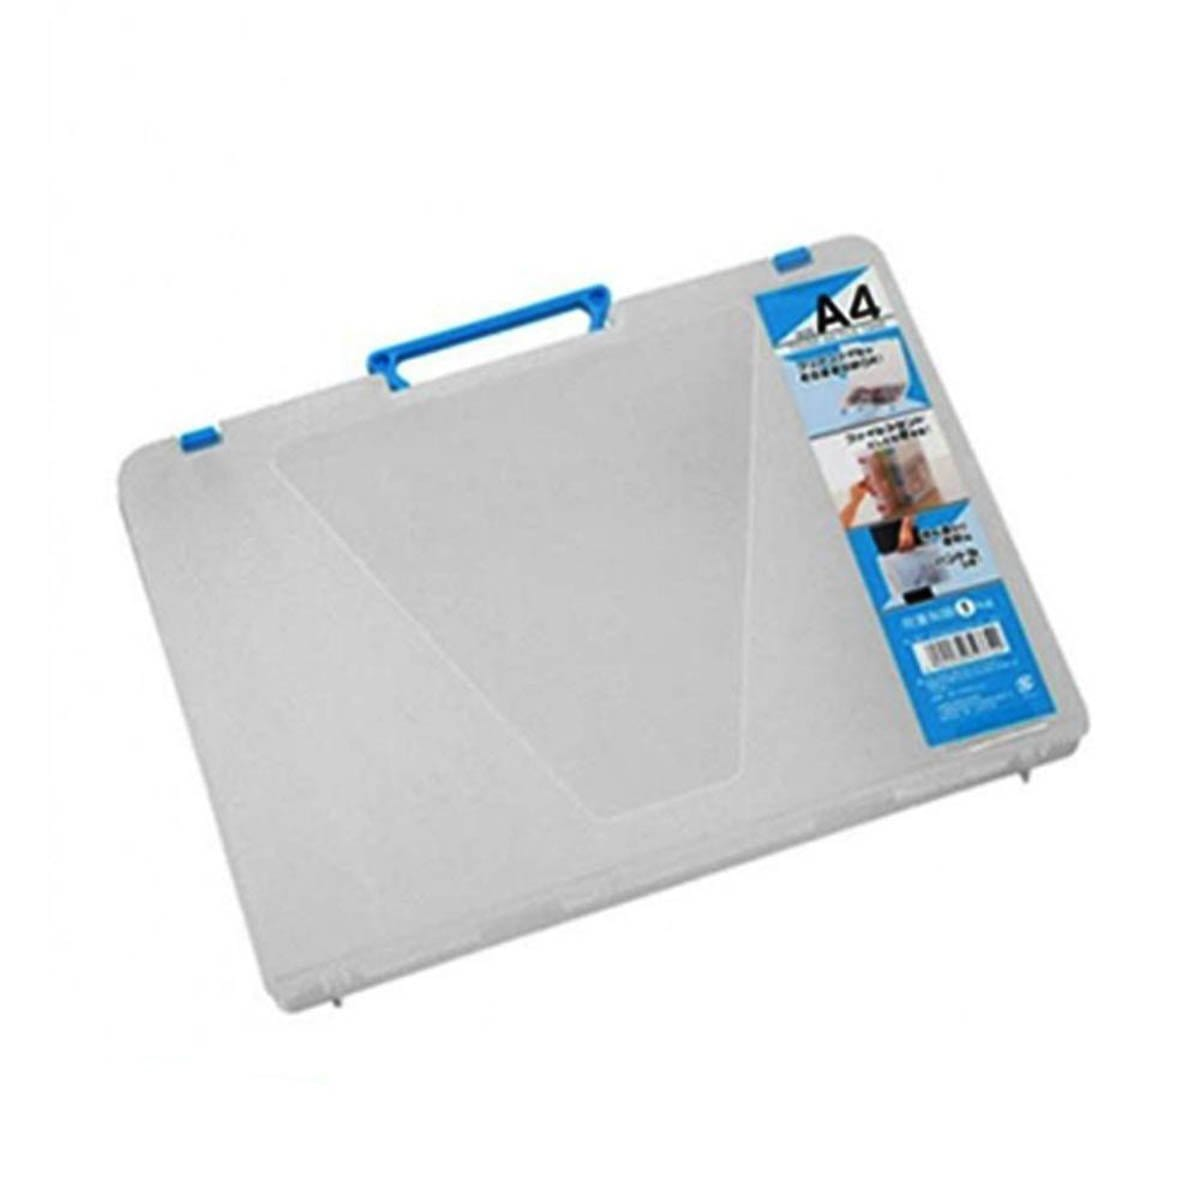 Japanese Plastic A4 Size File Folder Case With Handle Blue